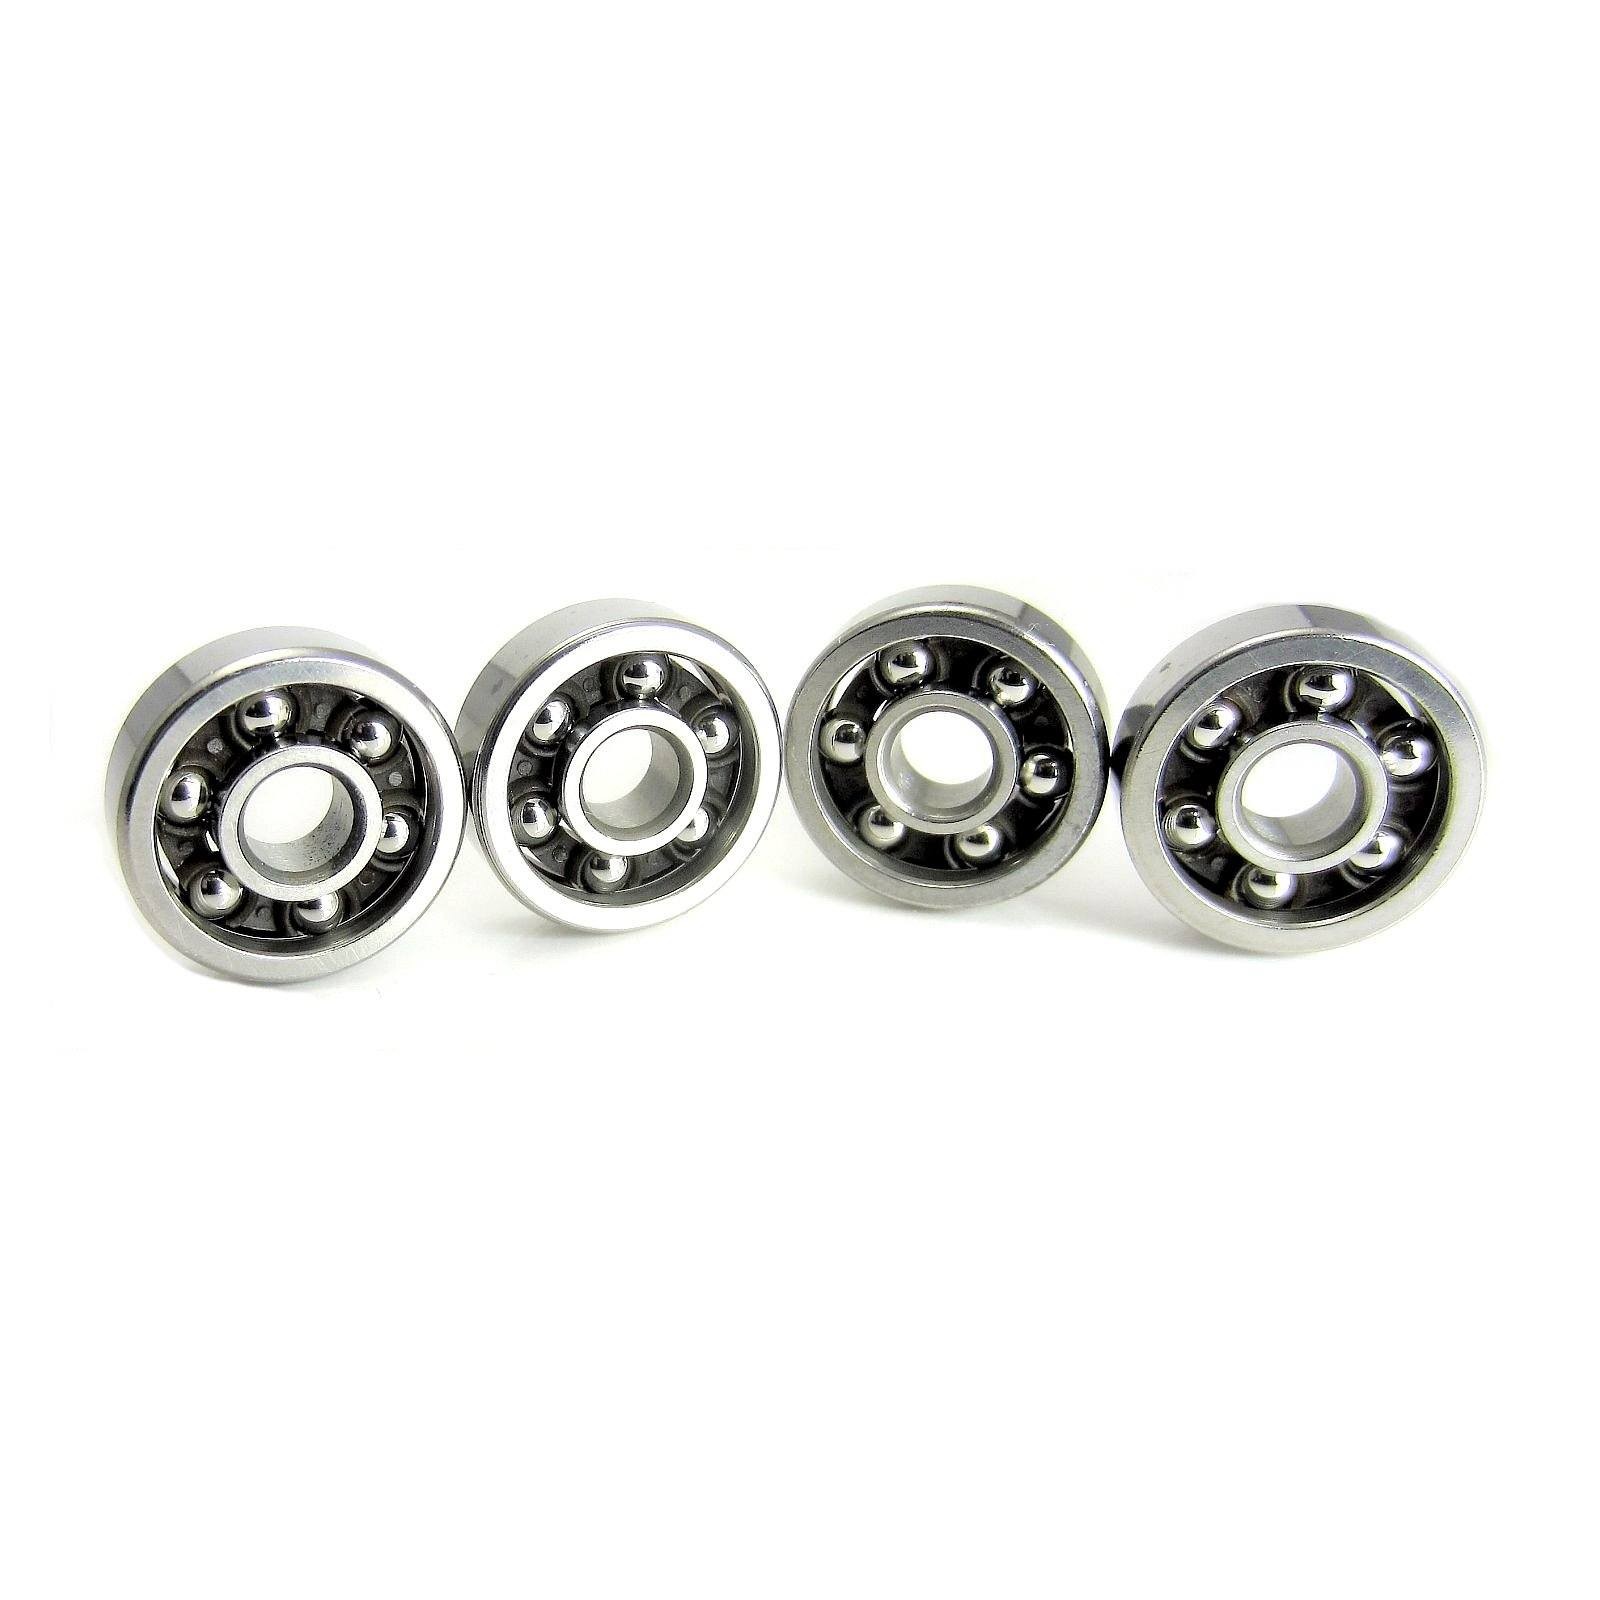 5x16x5mm 625  Open A5 Precision Ball Bearings (4) by TRB RC - trb-rc-bearings